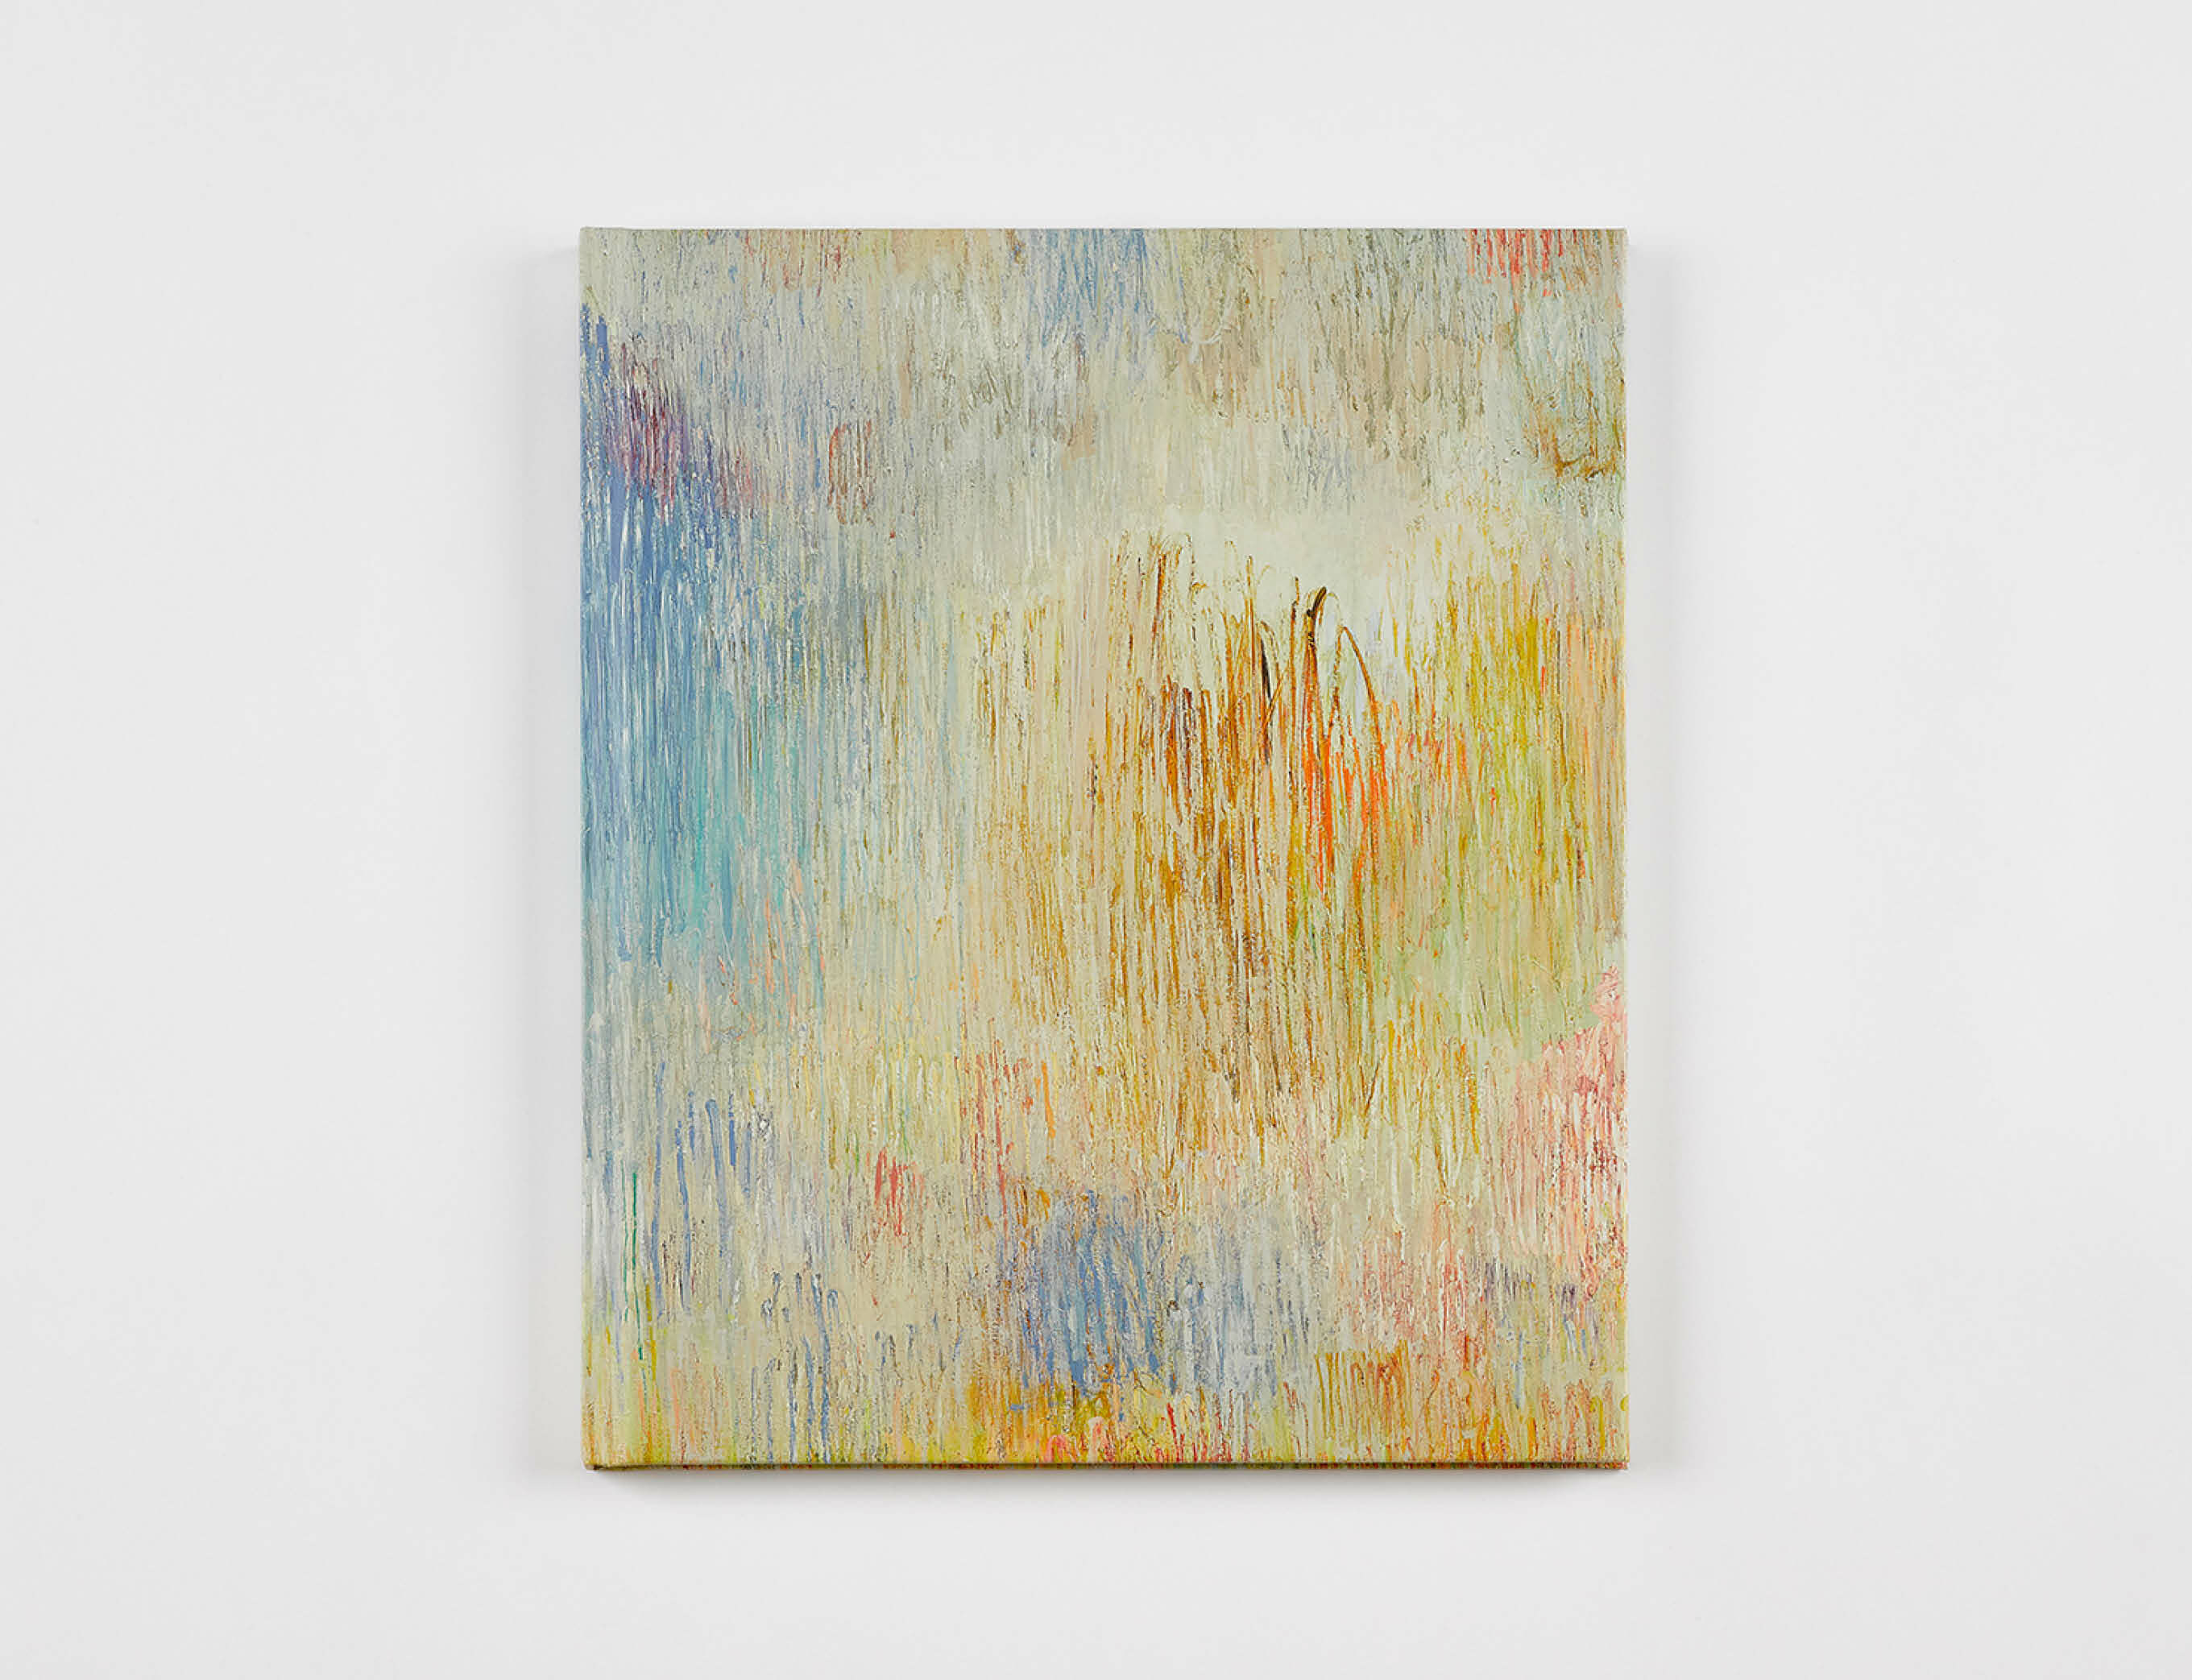 New publication accompanies Christopher Le Brun's first show at Lisson